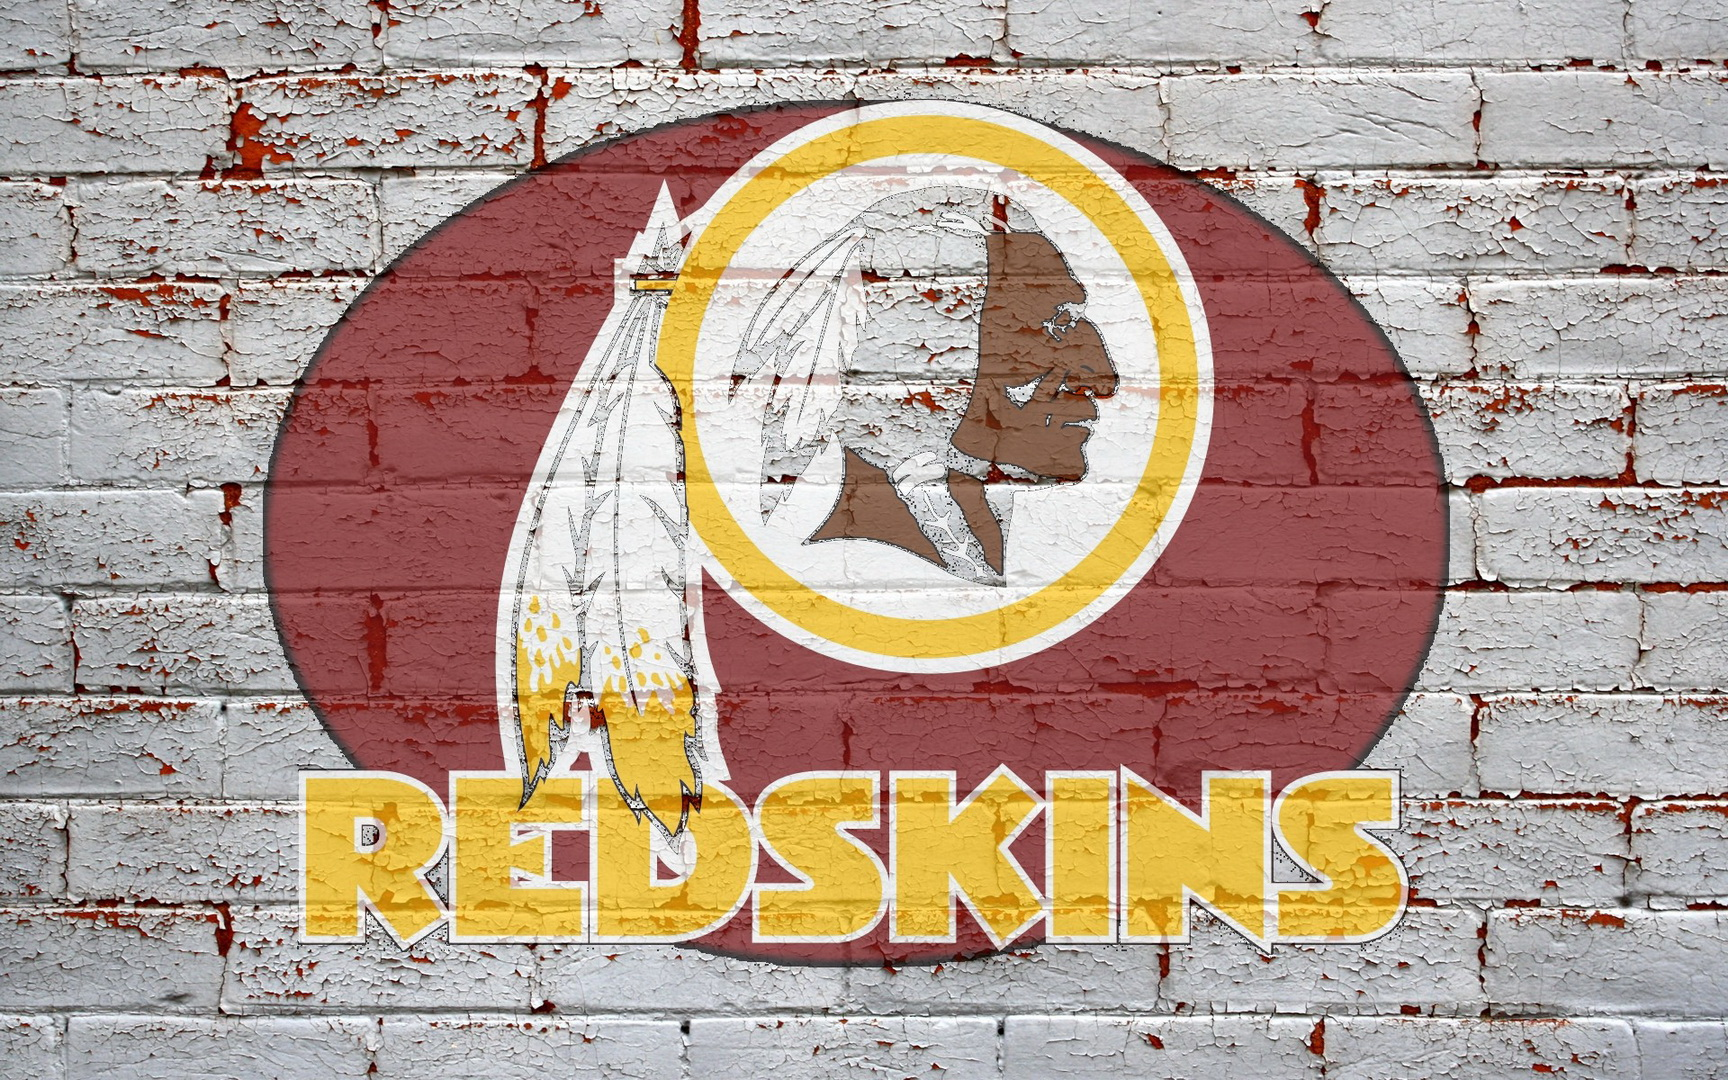 Download free redskins wallpapers for your mobile phone most 1728x1080 voltagebd Choice Image